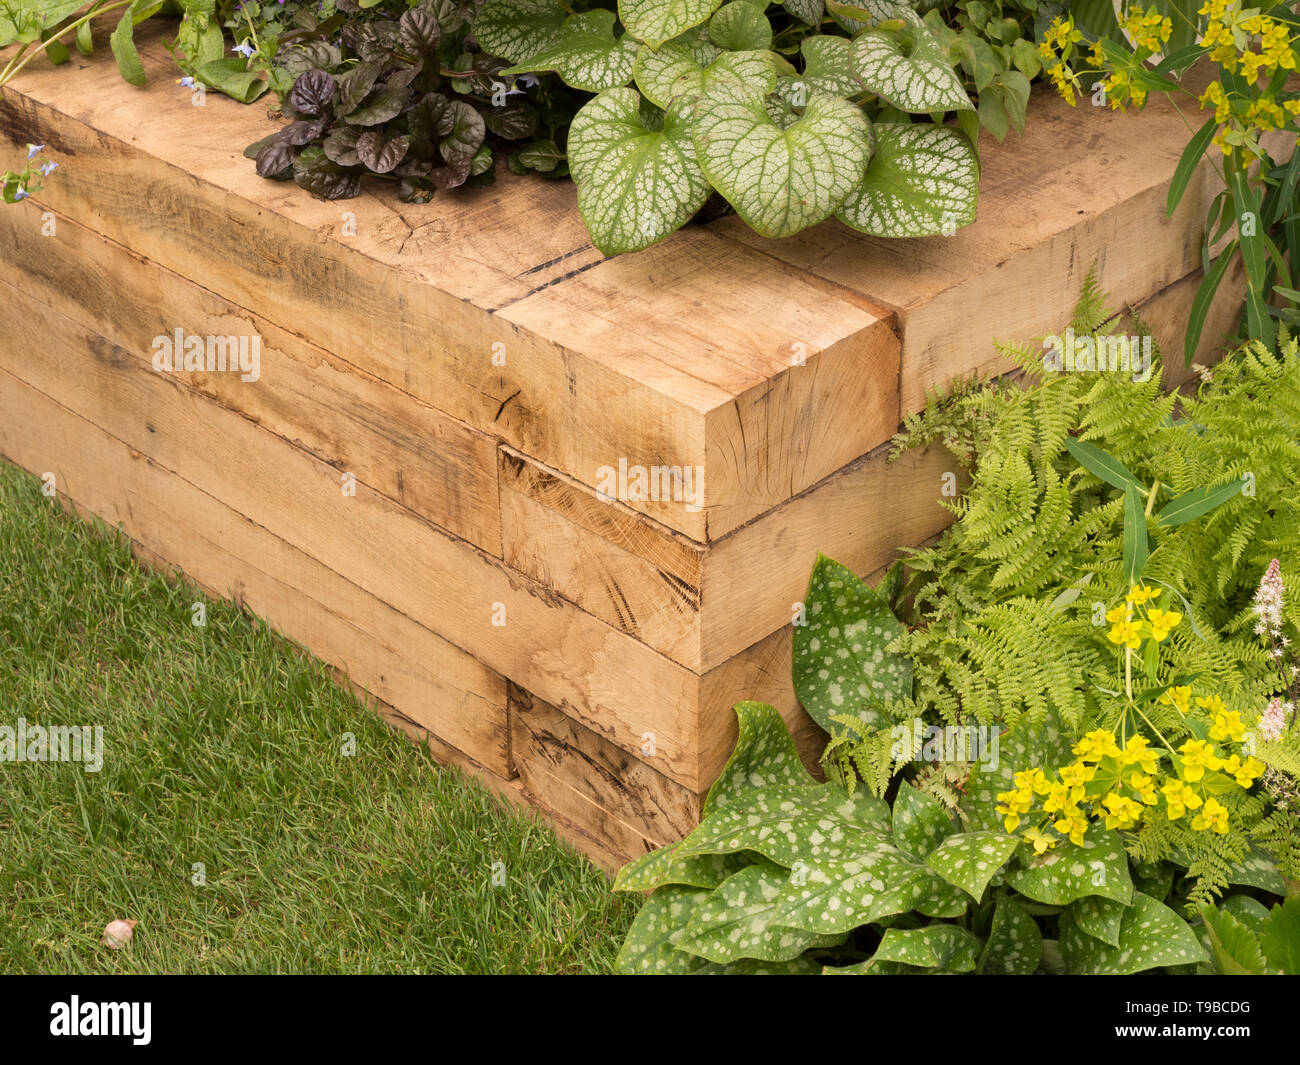 Using Railway Sleepers For Raised Vegetable Beds Raised Bed In Garden Made From Large Timber Pieces New Railway